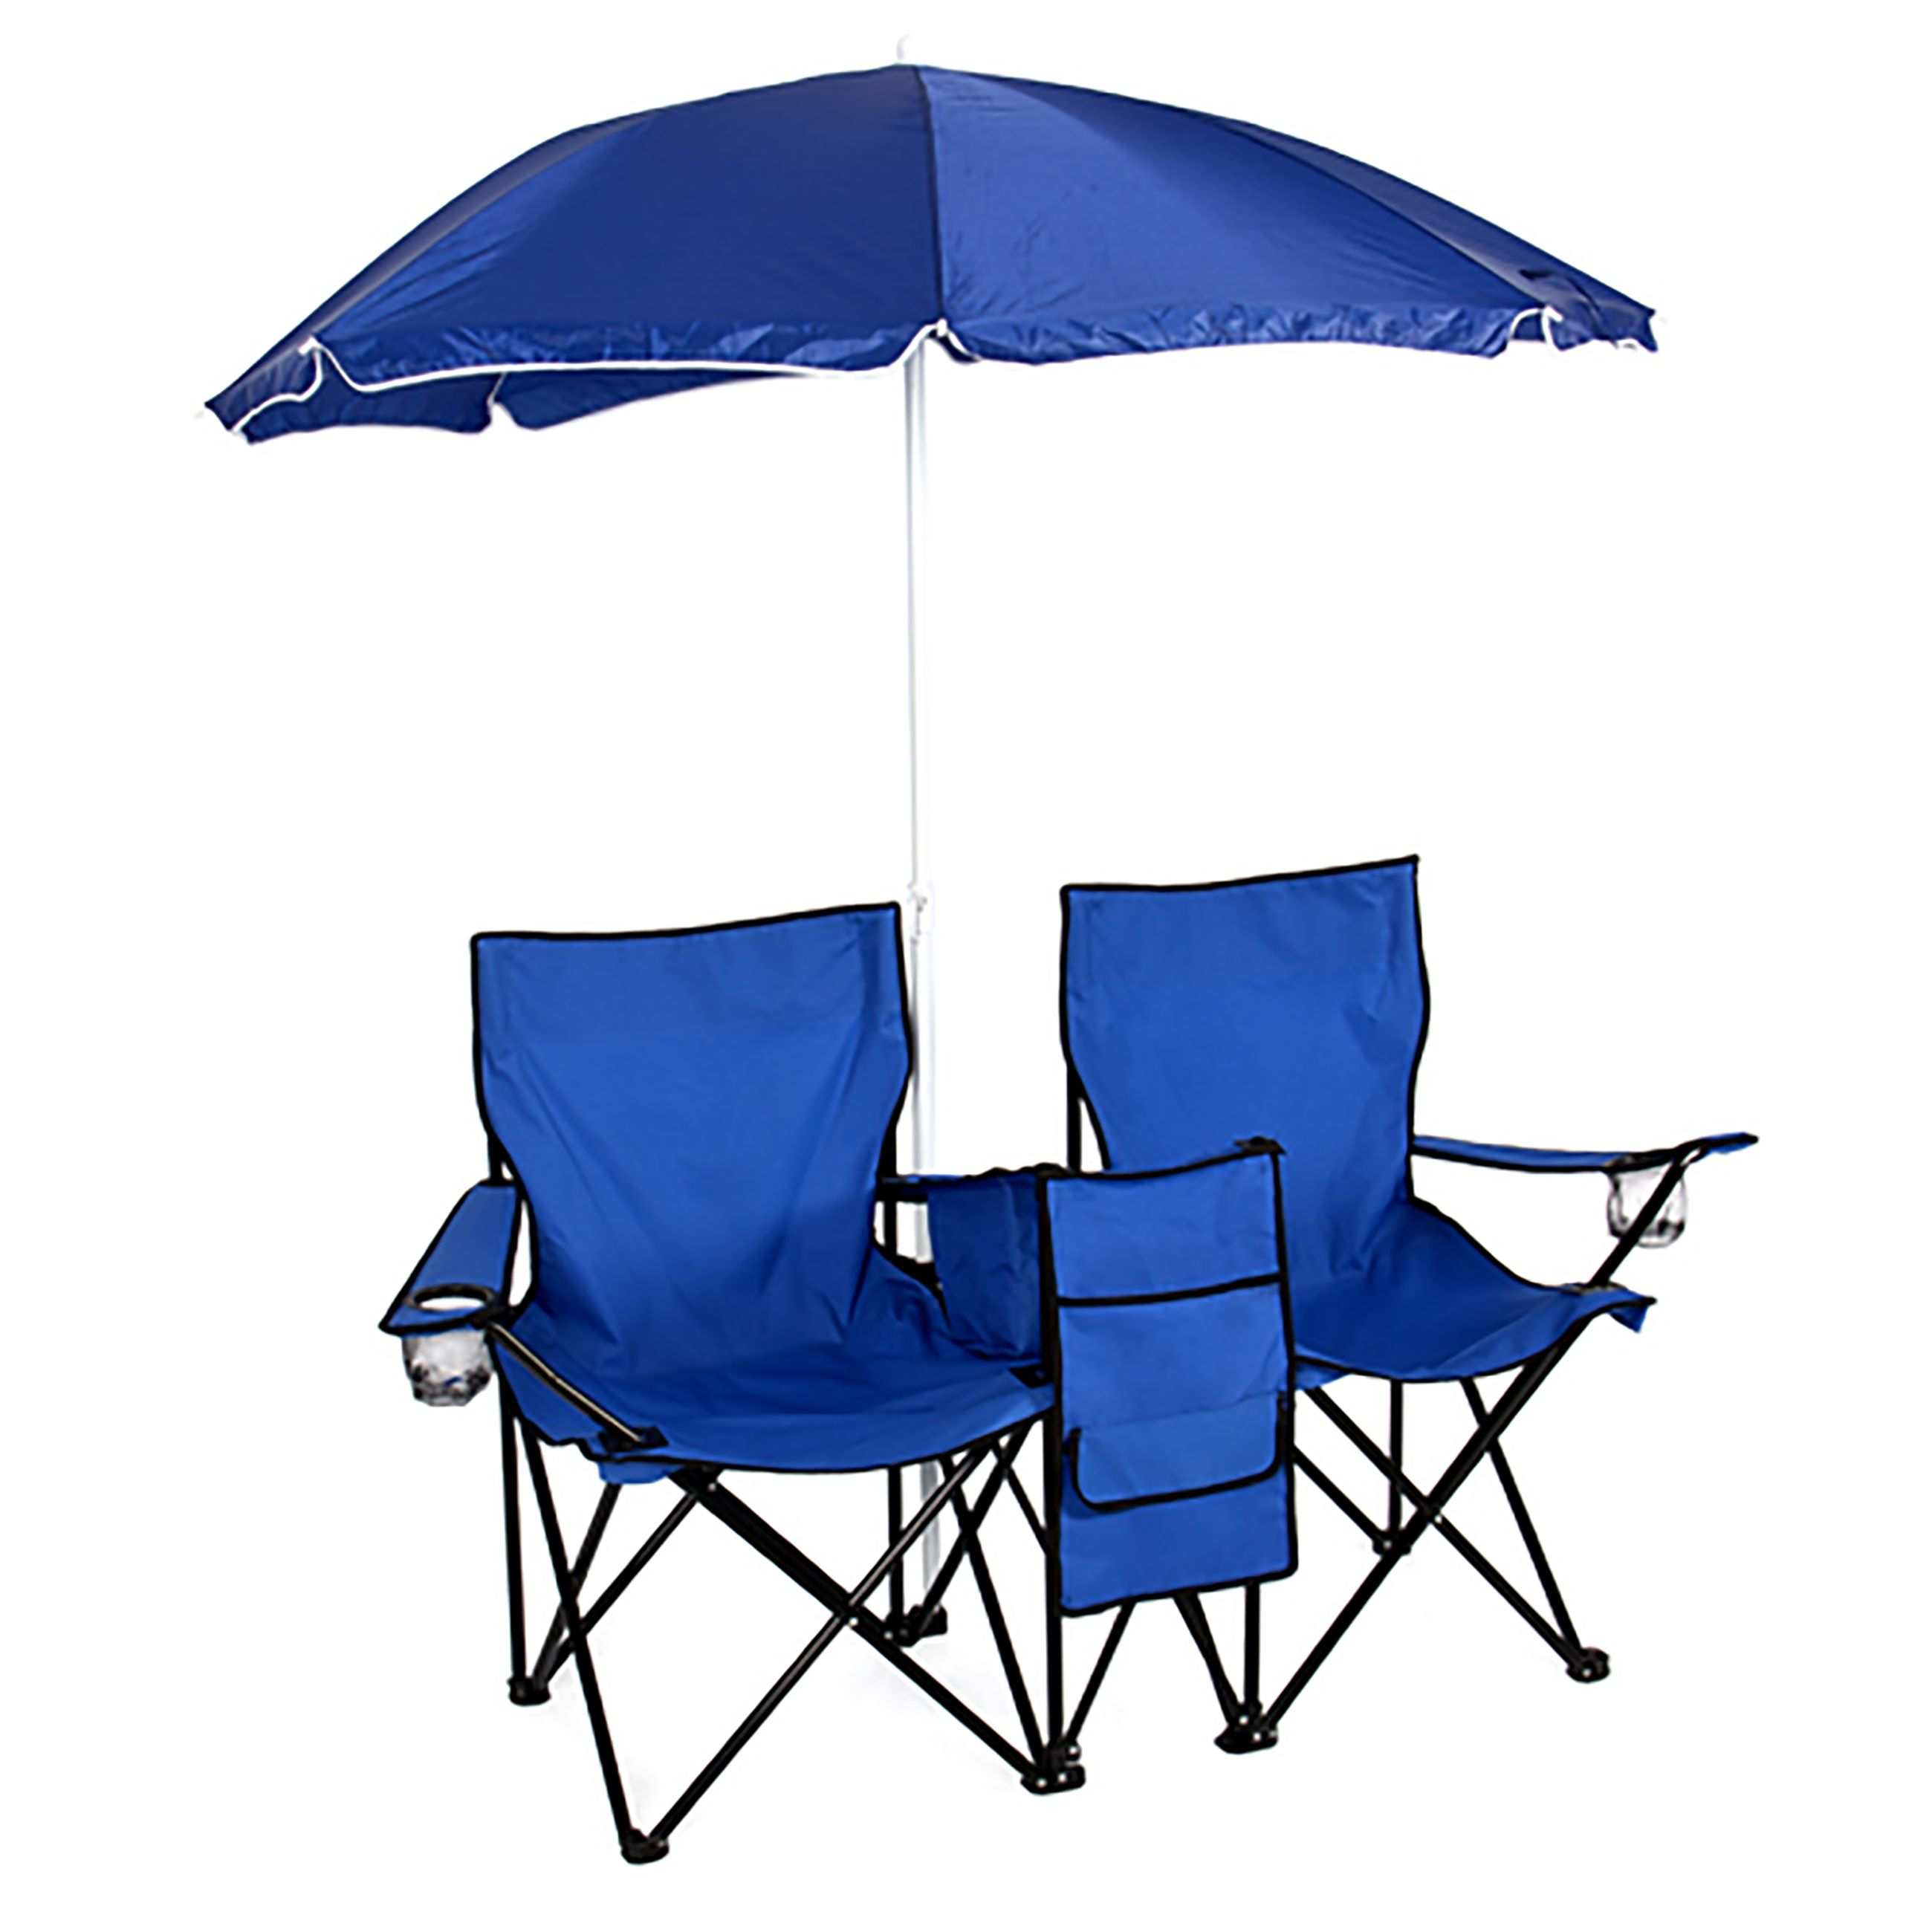 Double Folding Chair With Umbrella Camping & outdoor